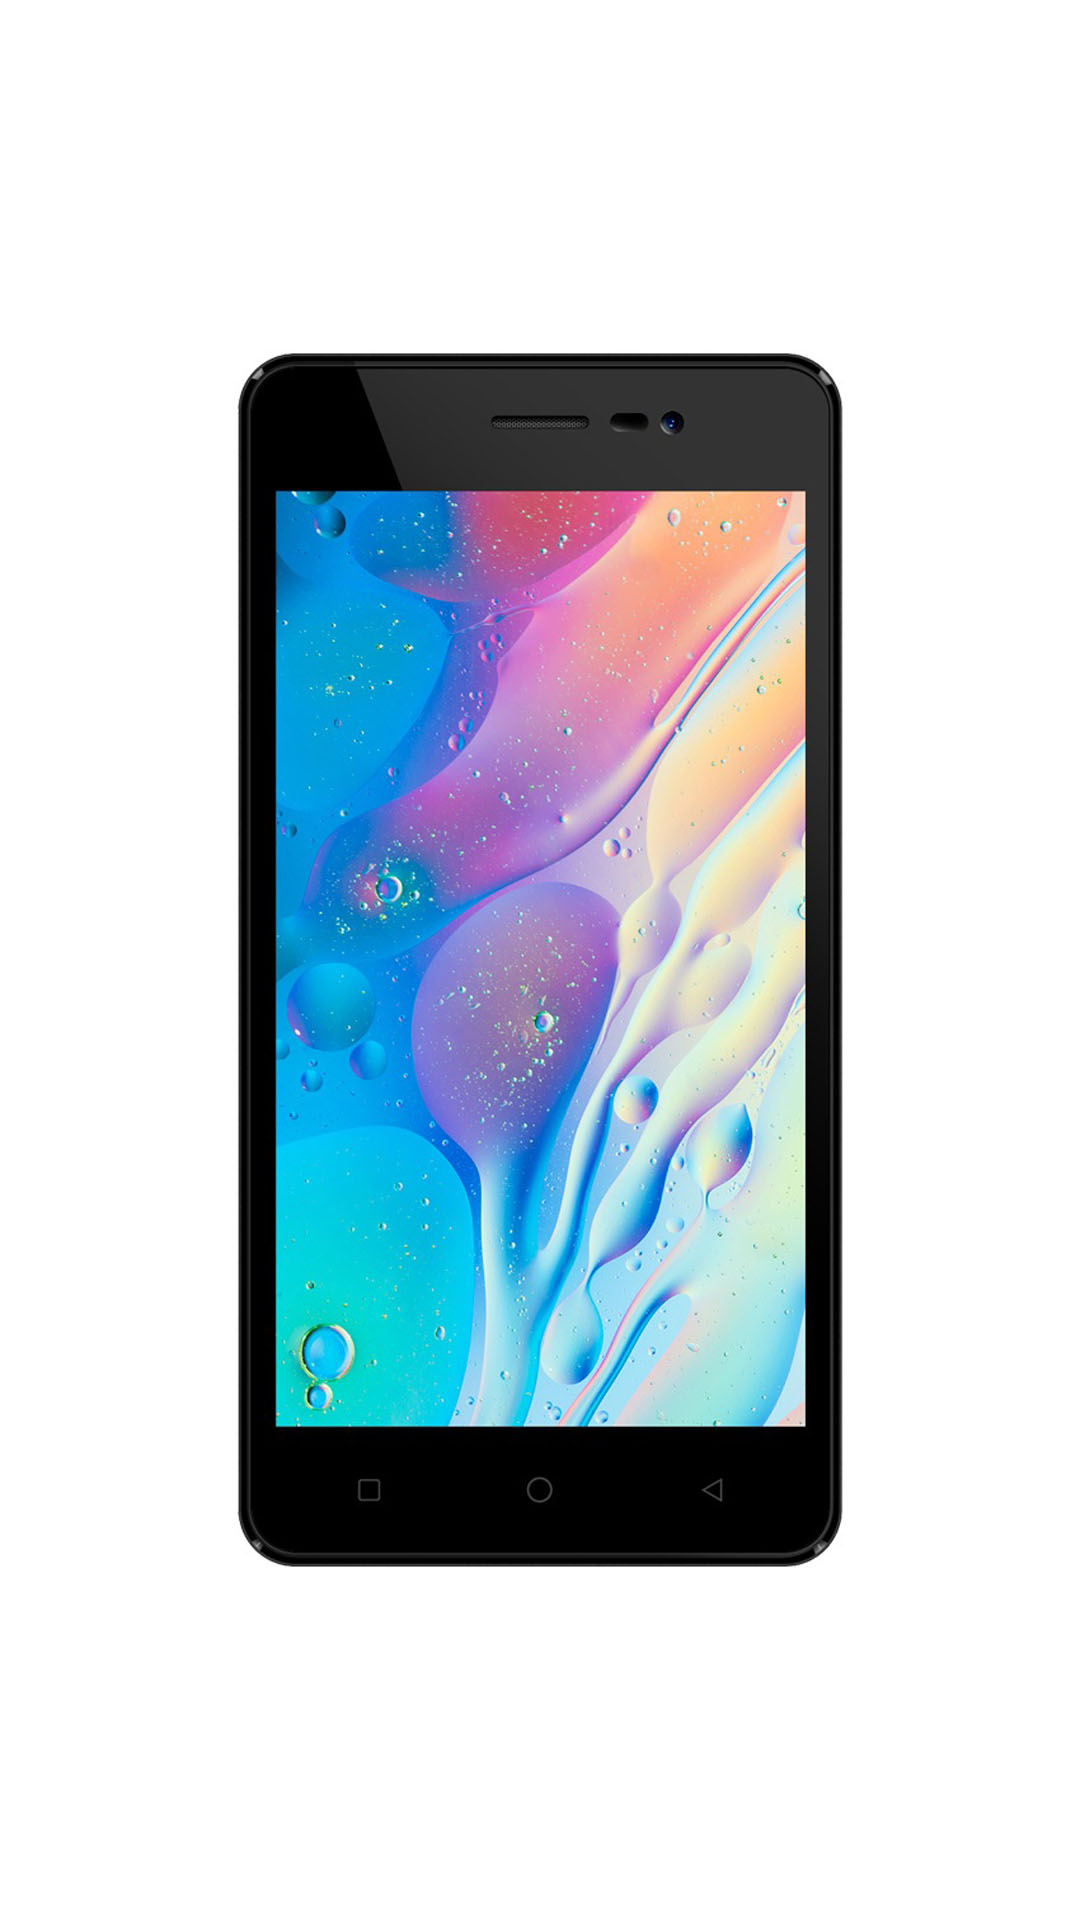 Karbonn Titanium K9 Smart 8 GB (Black)